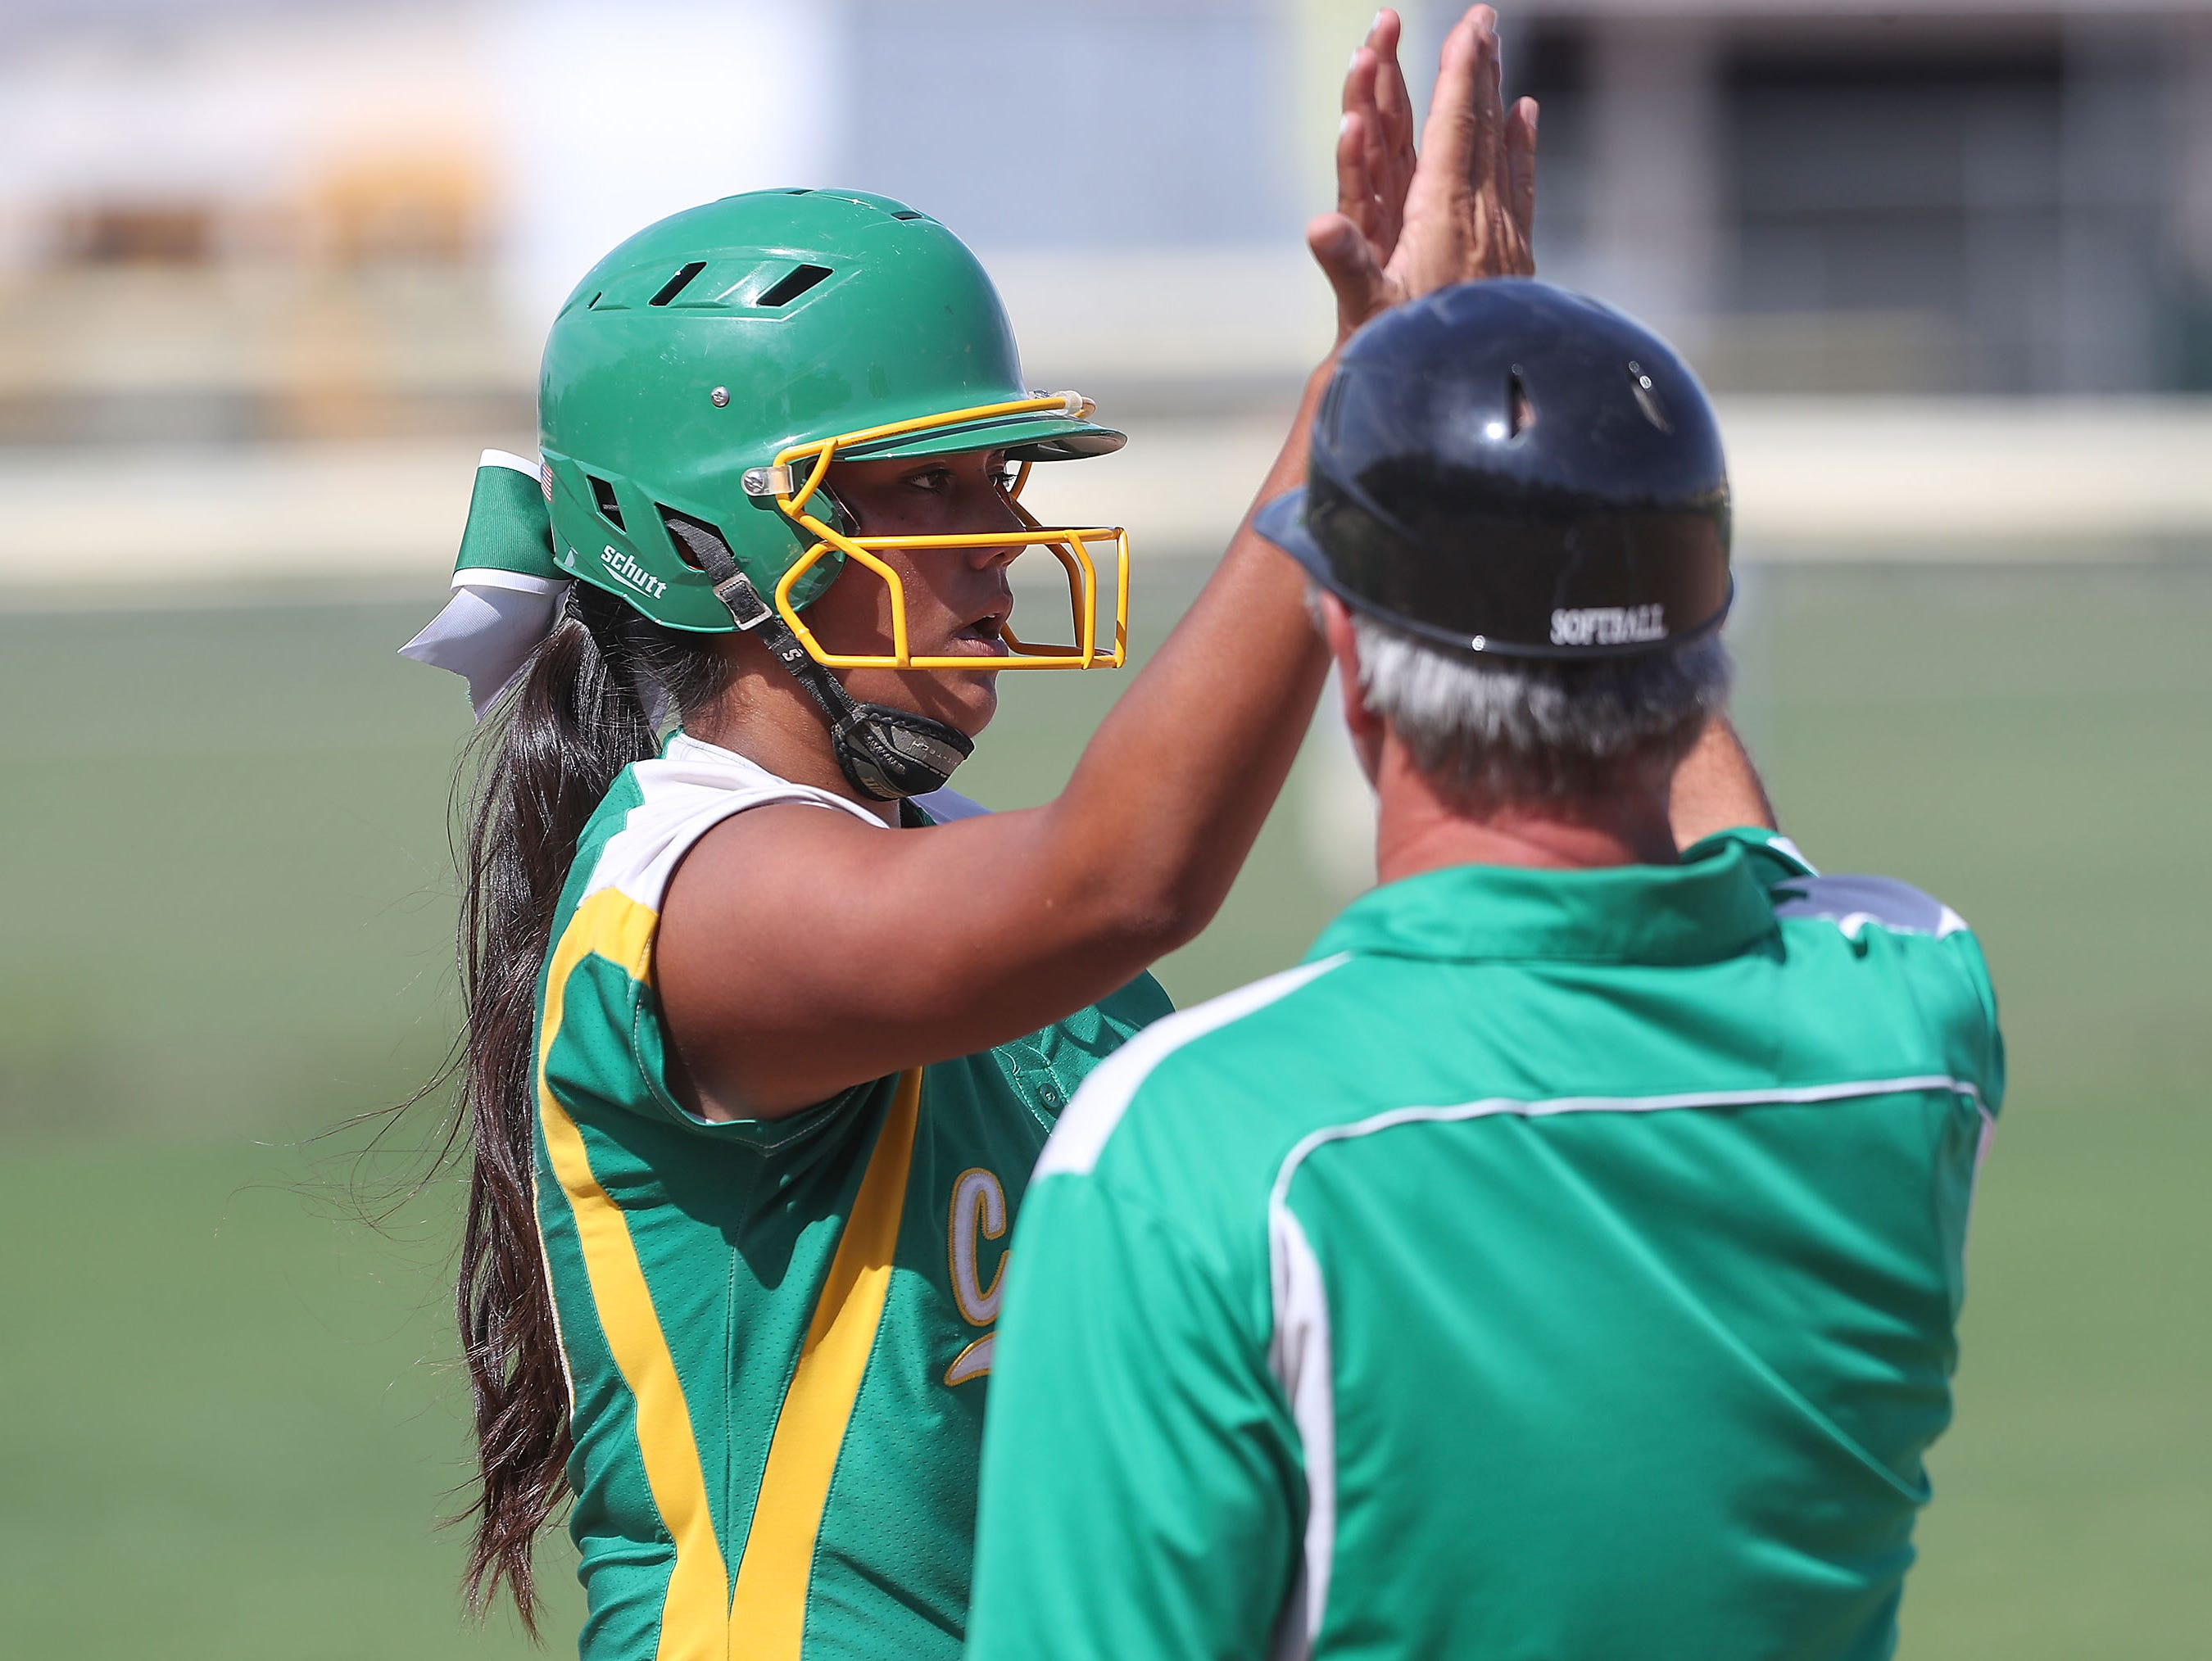 Cheyenne Sandoval of Coachella Valley gets a high five from a coach during their game against Anaheim May 9, 2019.